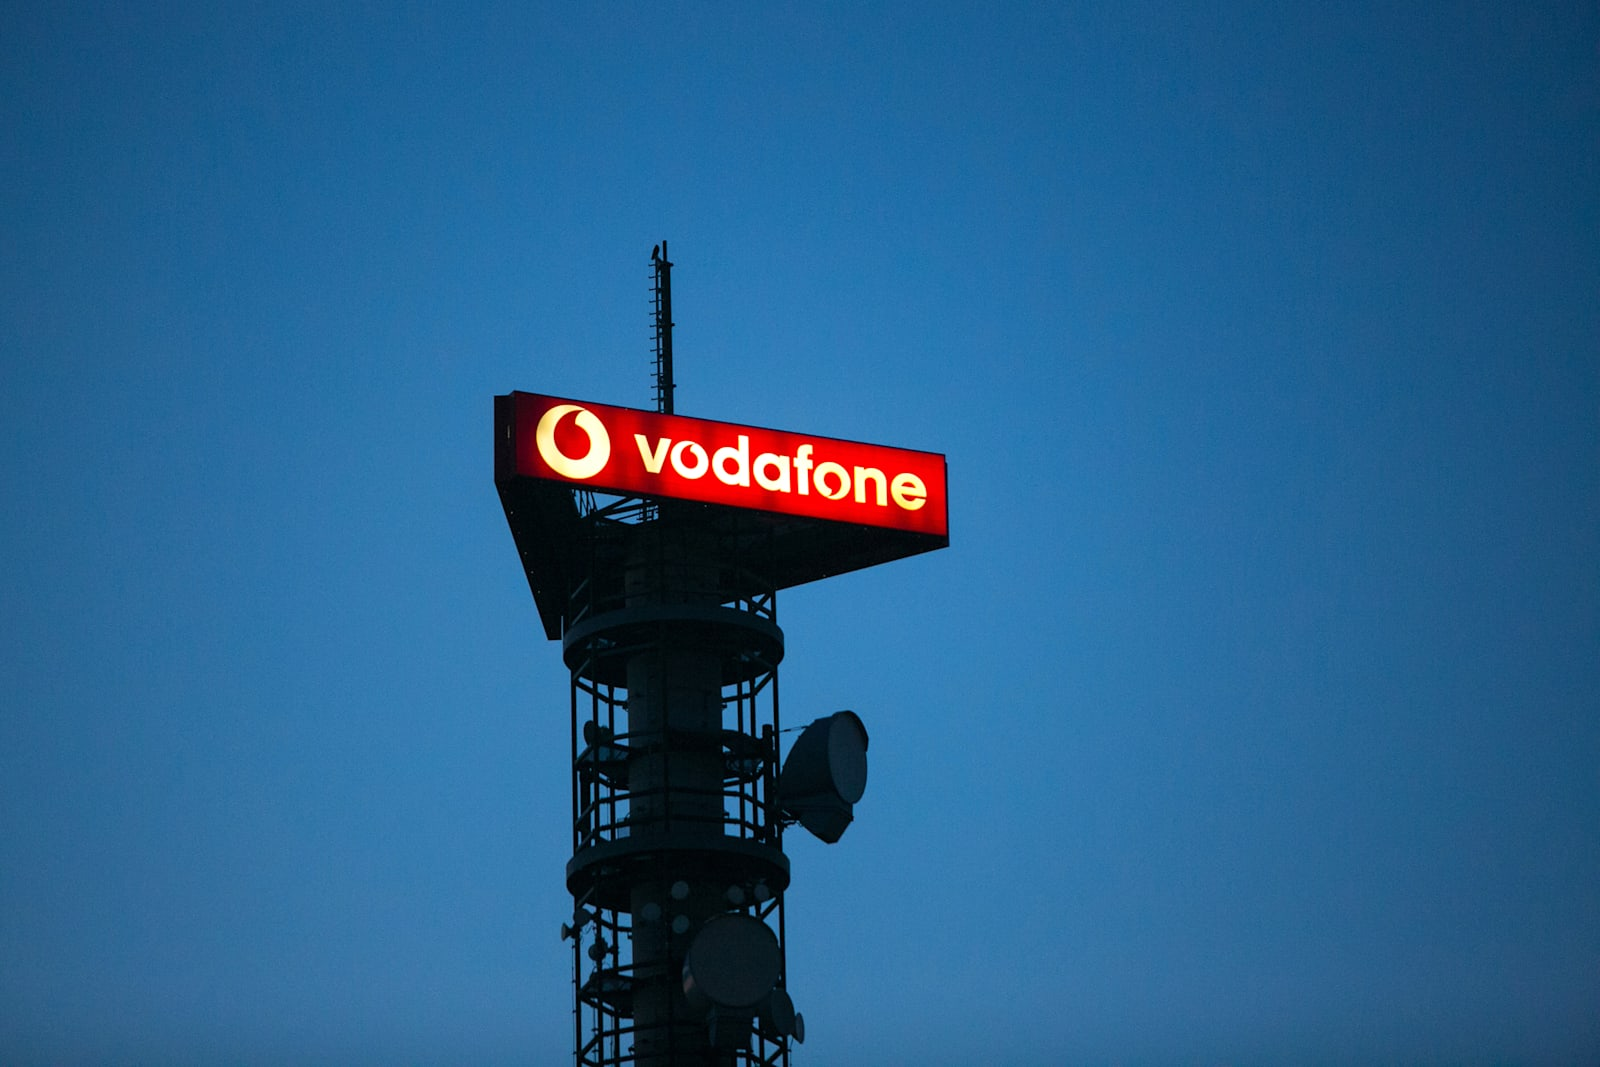 Vodafone fined £4.6m after PAYG top-up fails